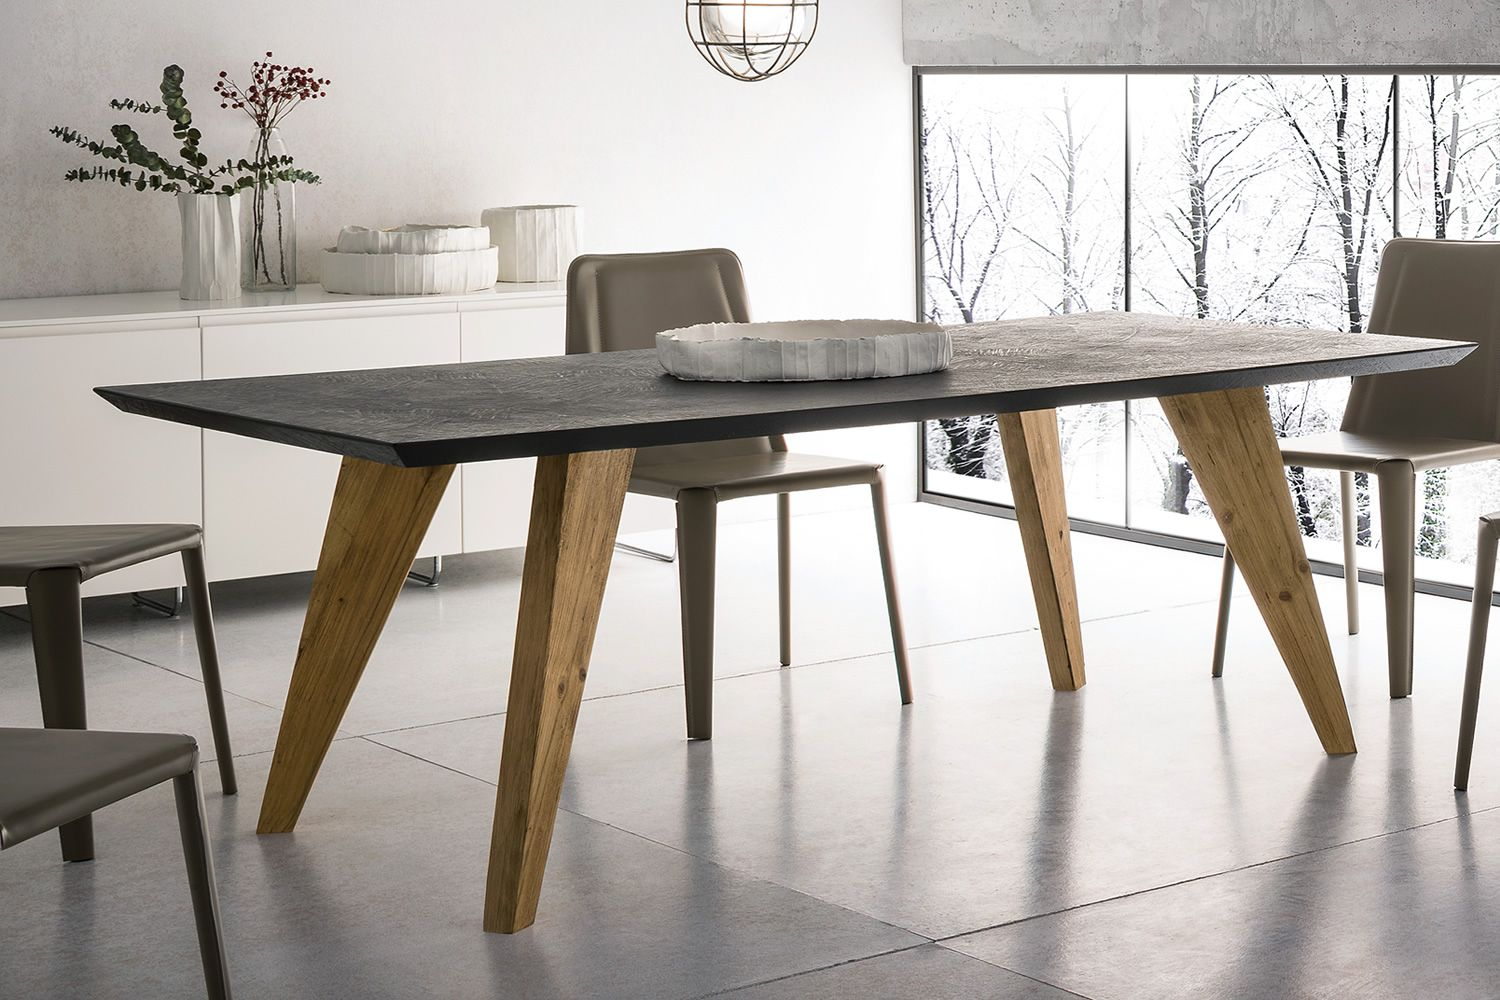 Artemidoro design wooden table 160x90 cm fixed top in for Moderne holztische